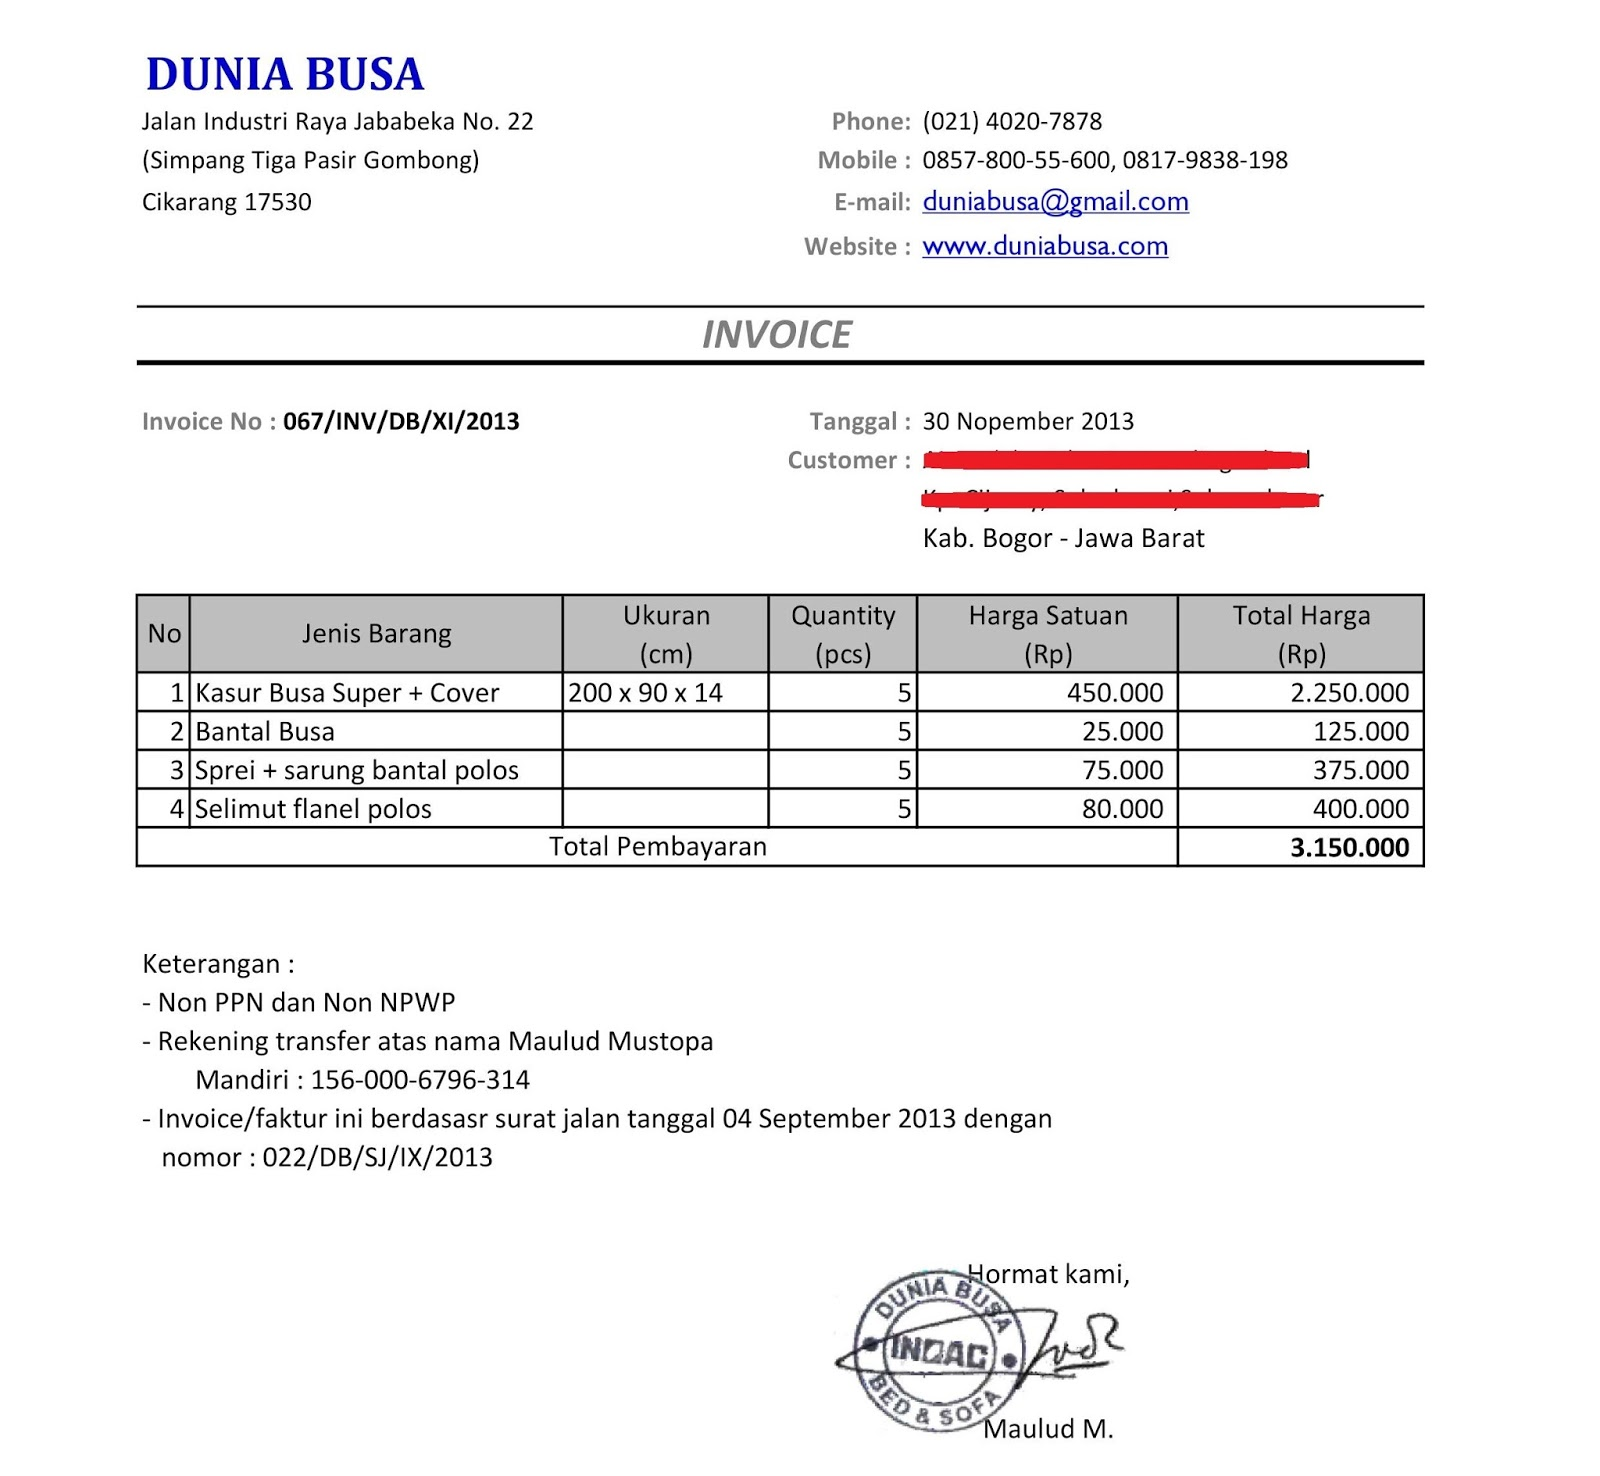 Usdgus  Sweet Free Invoice Online  Create Invoice Online  Invoice Template  With Magnificent Contoh Format Invoice Atau Surat Tagihan  Brankas Arsip  Free Invoice Online With Extraordinary Automatic Invoice Processing Also Invoice Accounting Software In Addition Simple Proforma Invoice Template And Mail Invoice As Well As Valid Tax Invoice Requirements Additionally Difference Between Proforma Invoice And Invoice From Sklepco With Usdgus  Magnificent Free Invoice Online  Create Invoice Online  Invoice Template  With Extraordinary Contoh Format Invoice Atau Surat Tagihan  Brankas Arsip  Free Invoice Online And Sweet Automatic Invoice Processing Also Invoice Accounting Software In Addition Simple Proforma Invoice Template From Sklepco